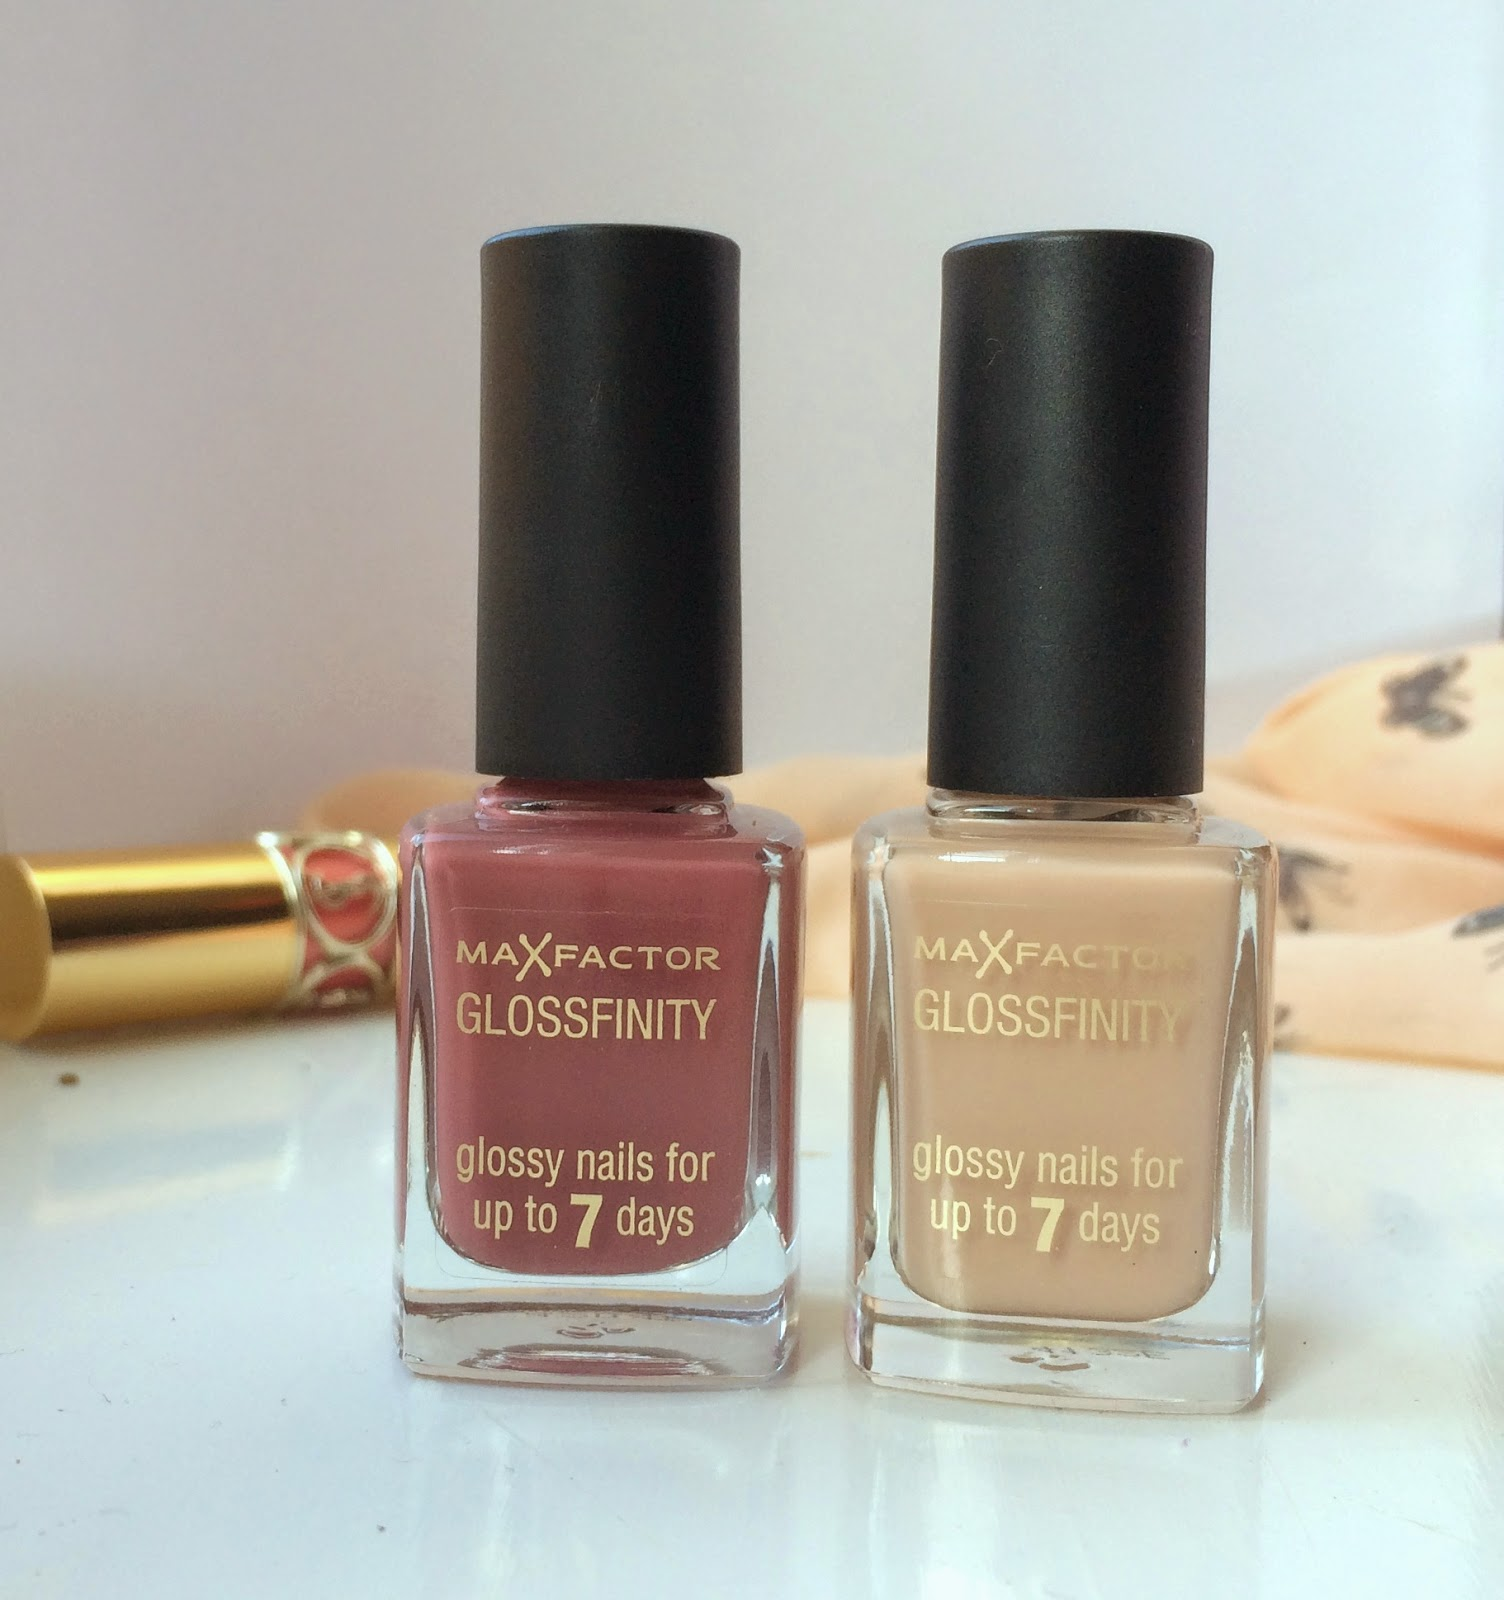 max-factor-glossfinity-candy-rose-desert-sand